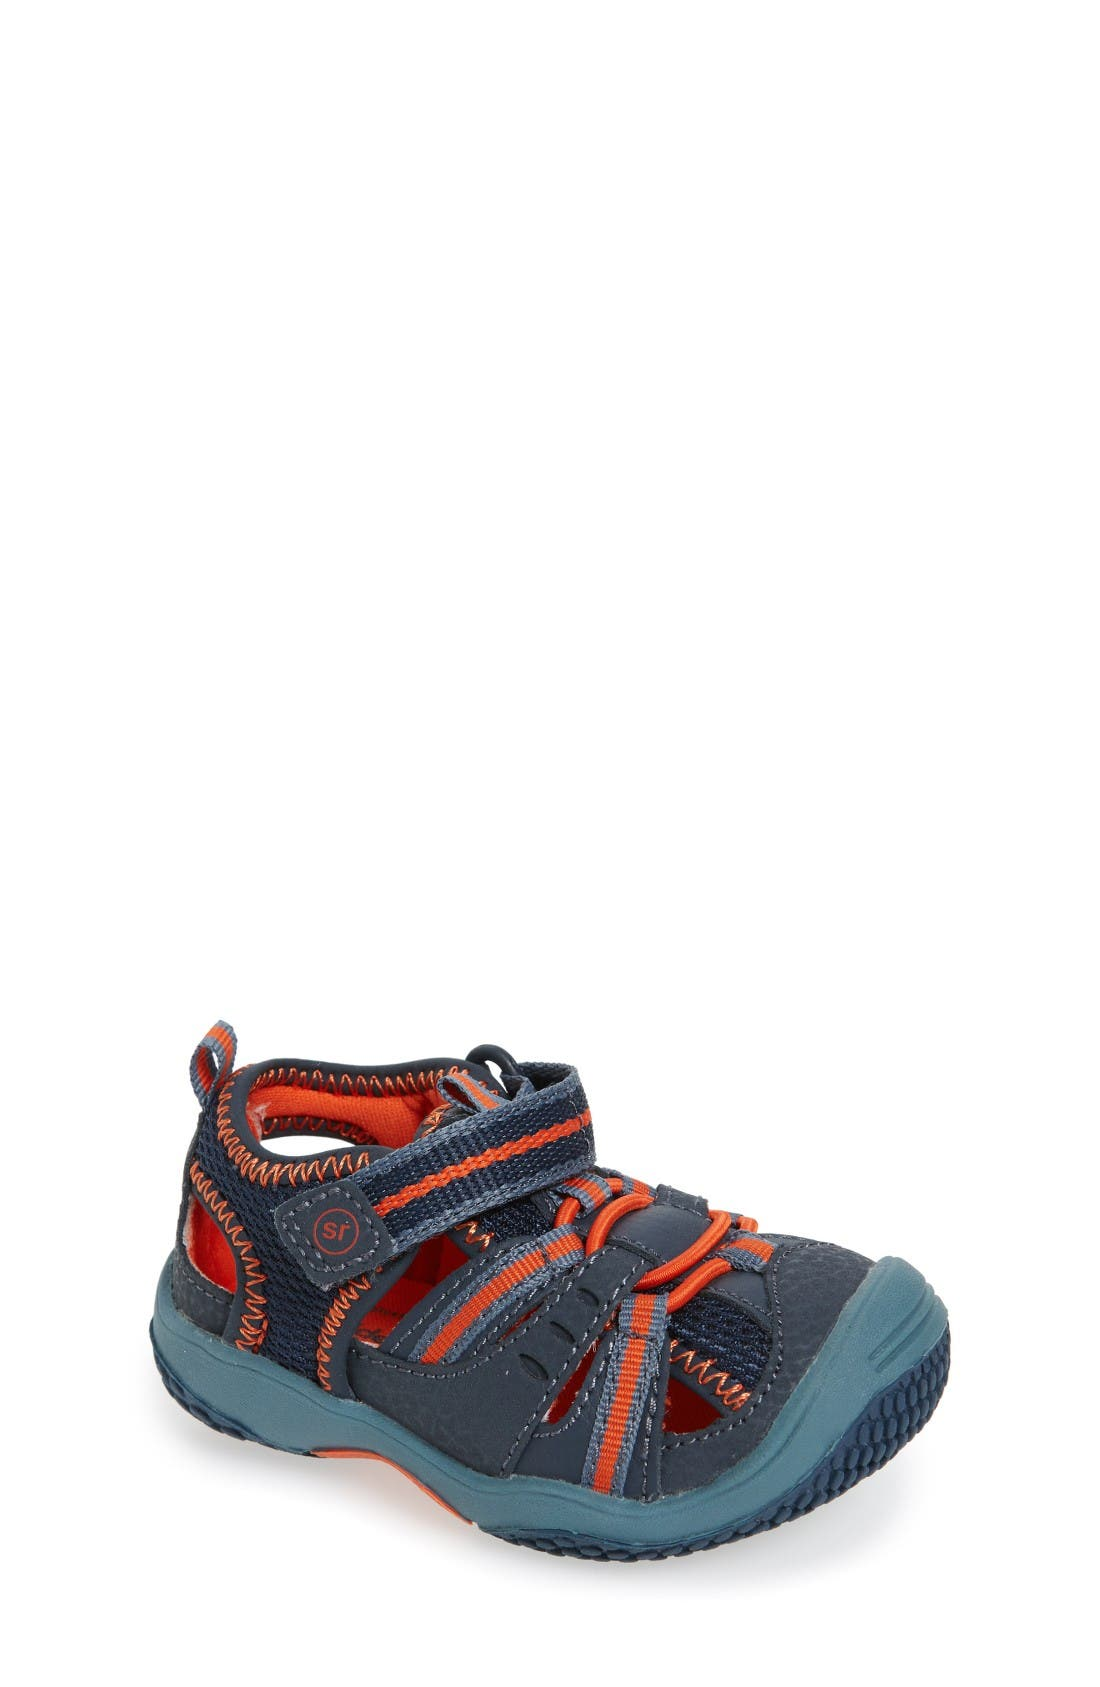 Baby Riff Sport Sandal,                         Main,                         color, Navy/ Orange Leather